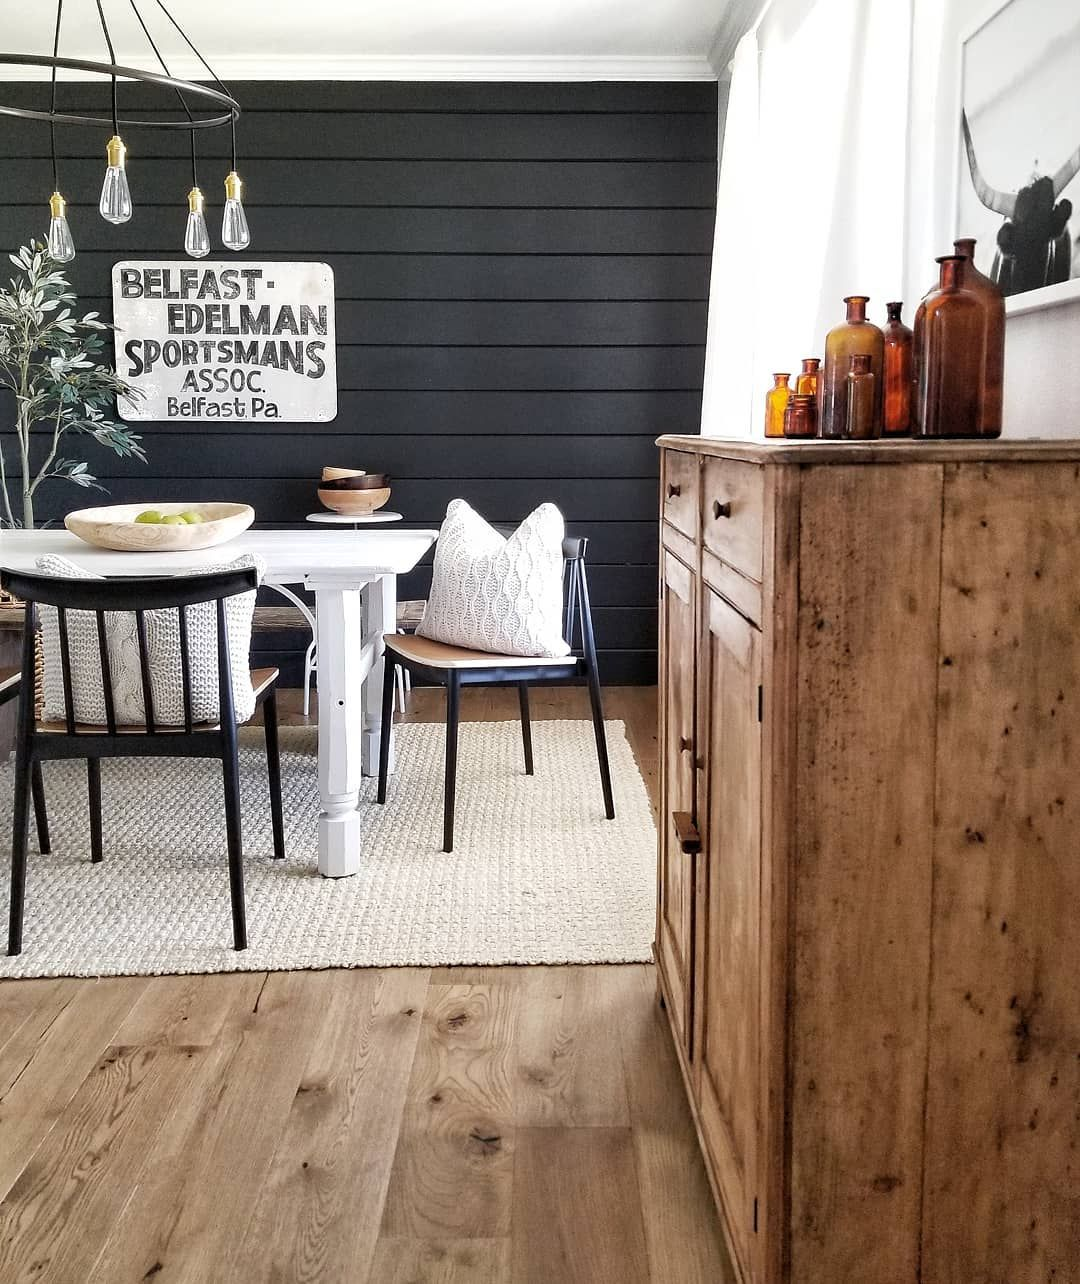 Black Shiplap Wall By Cynthia Harper On Instagram Cynthia Harper Dining Room Accent Wall Black Dining Room Dining Room Walls #paint #living #room #accent #wall